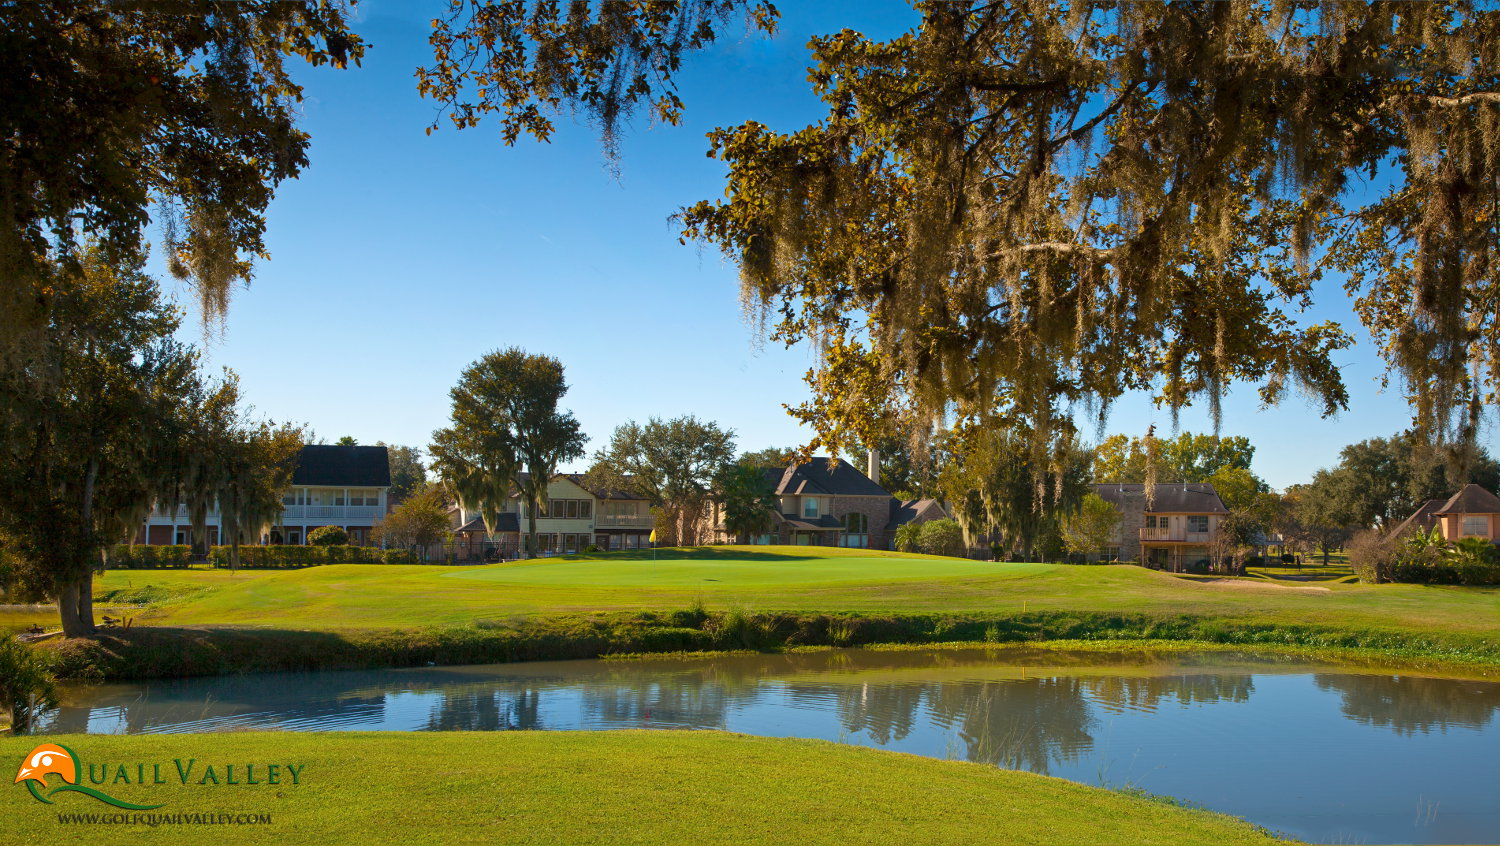 La Quinta Golf Course at Quail Valley - Public Golf Tee Times